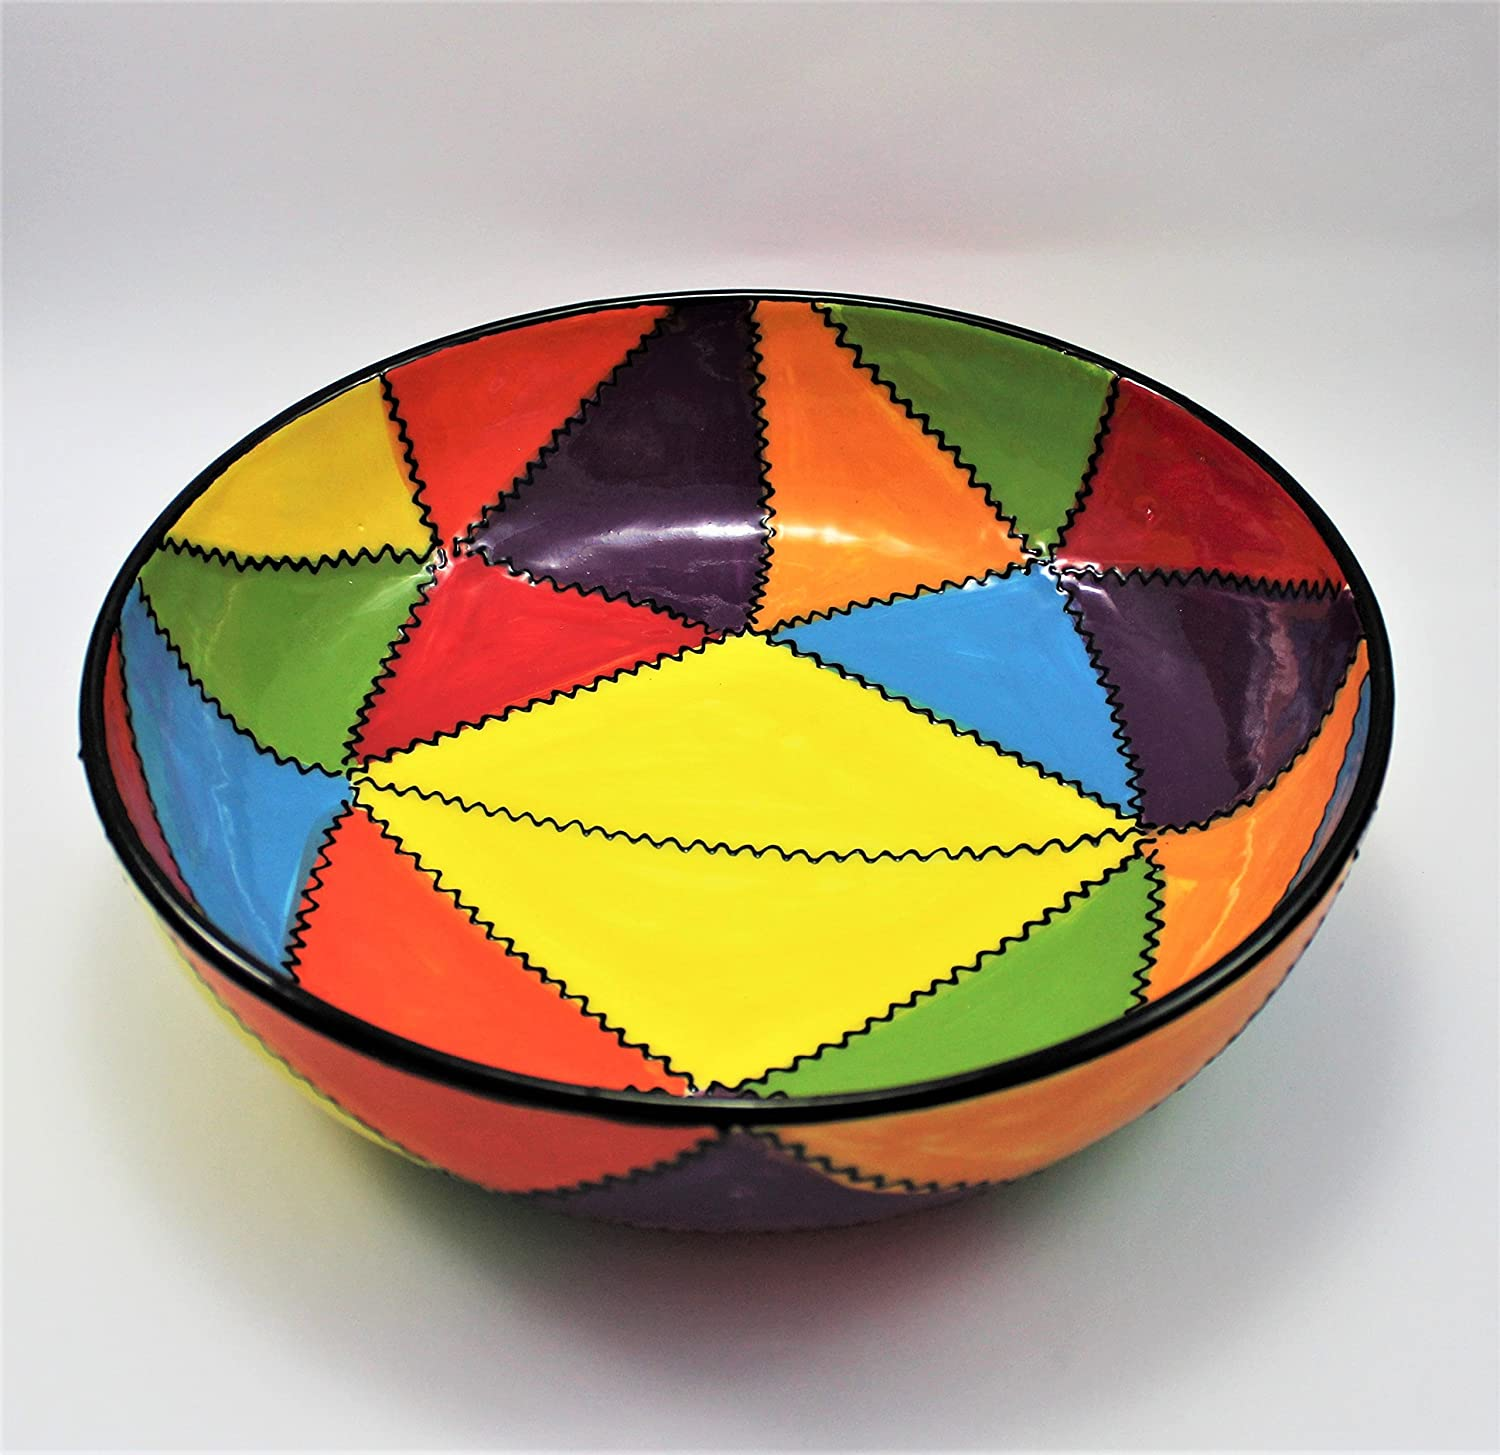 Bowl/Salad Bowl Ceramic. Very decorative. Hand Painted. Handmade. Made in Spain. 17.5cm multi-coloured rg